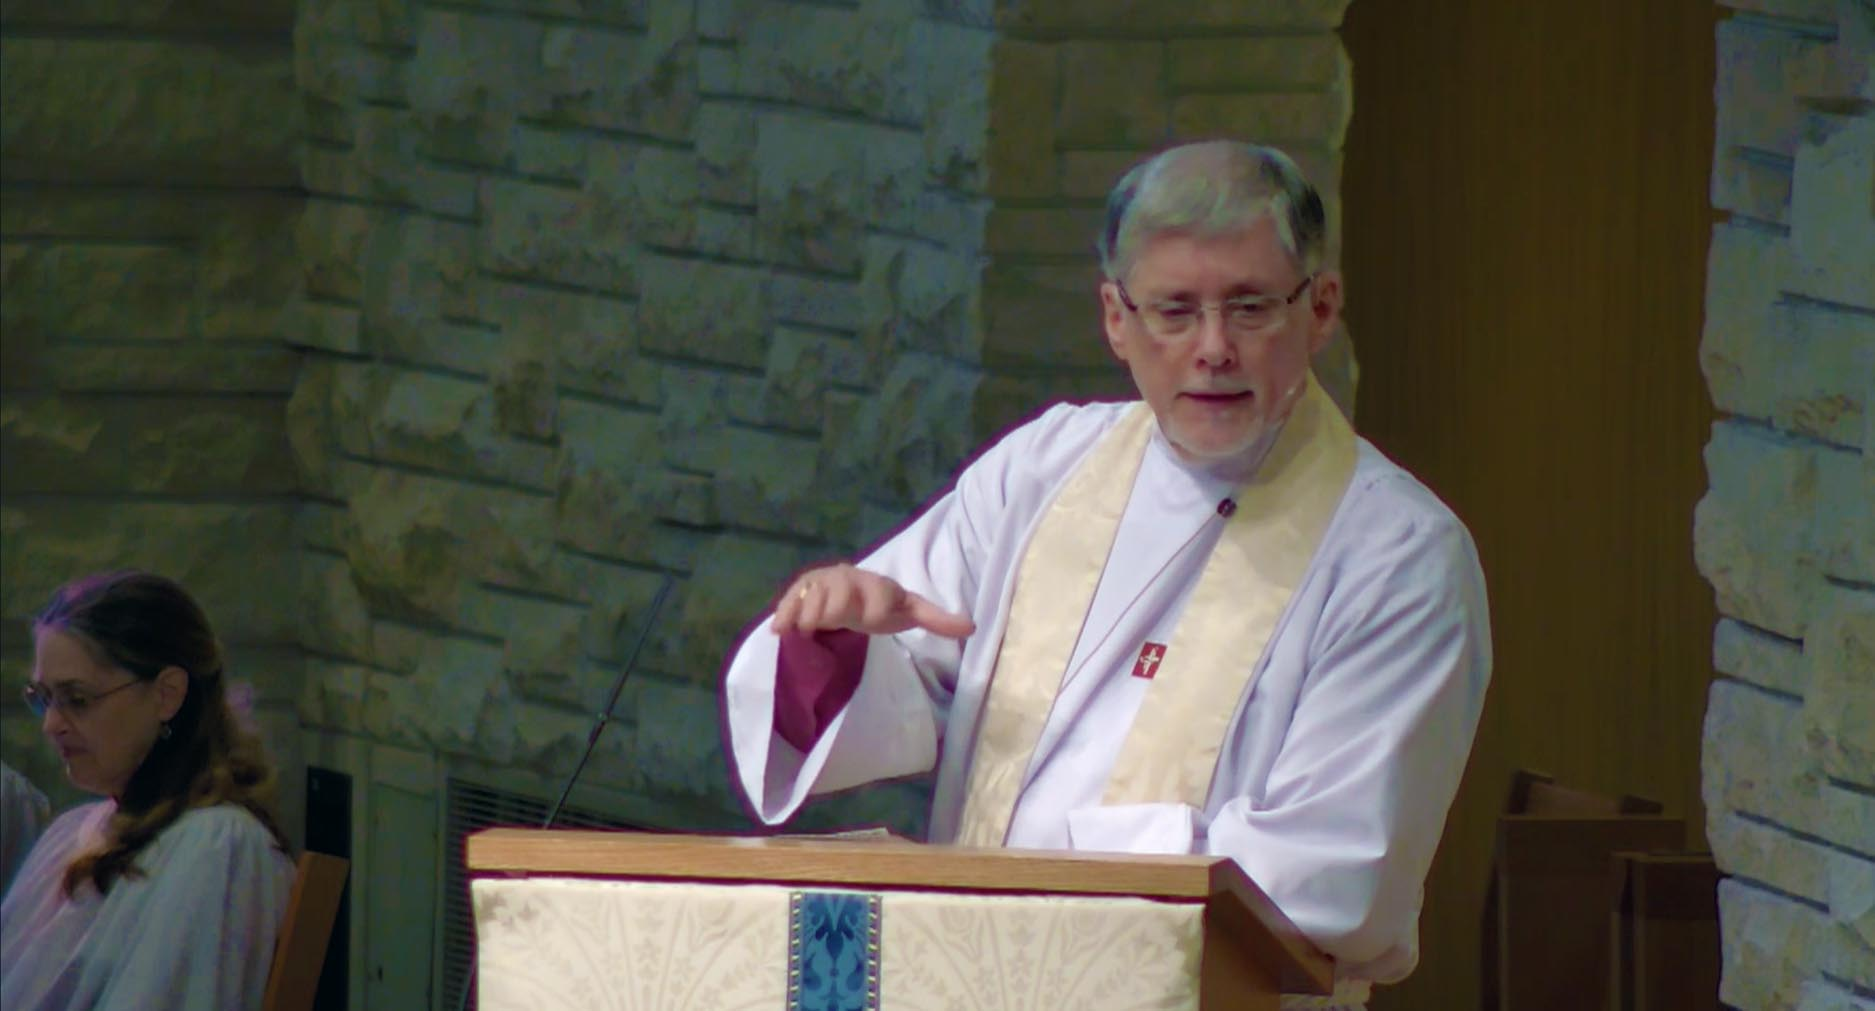 Carrying on the Family Name - Sermon by Bishop Gary Lillibridge